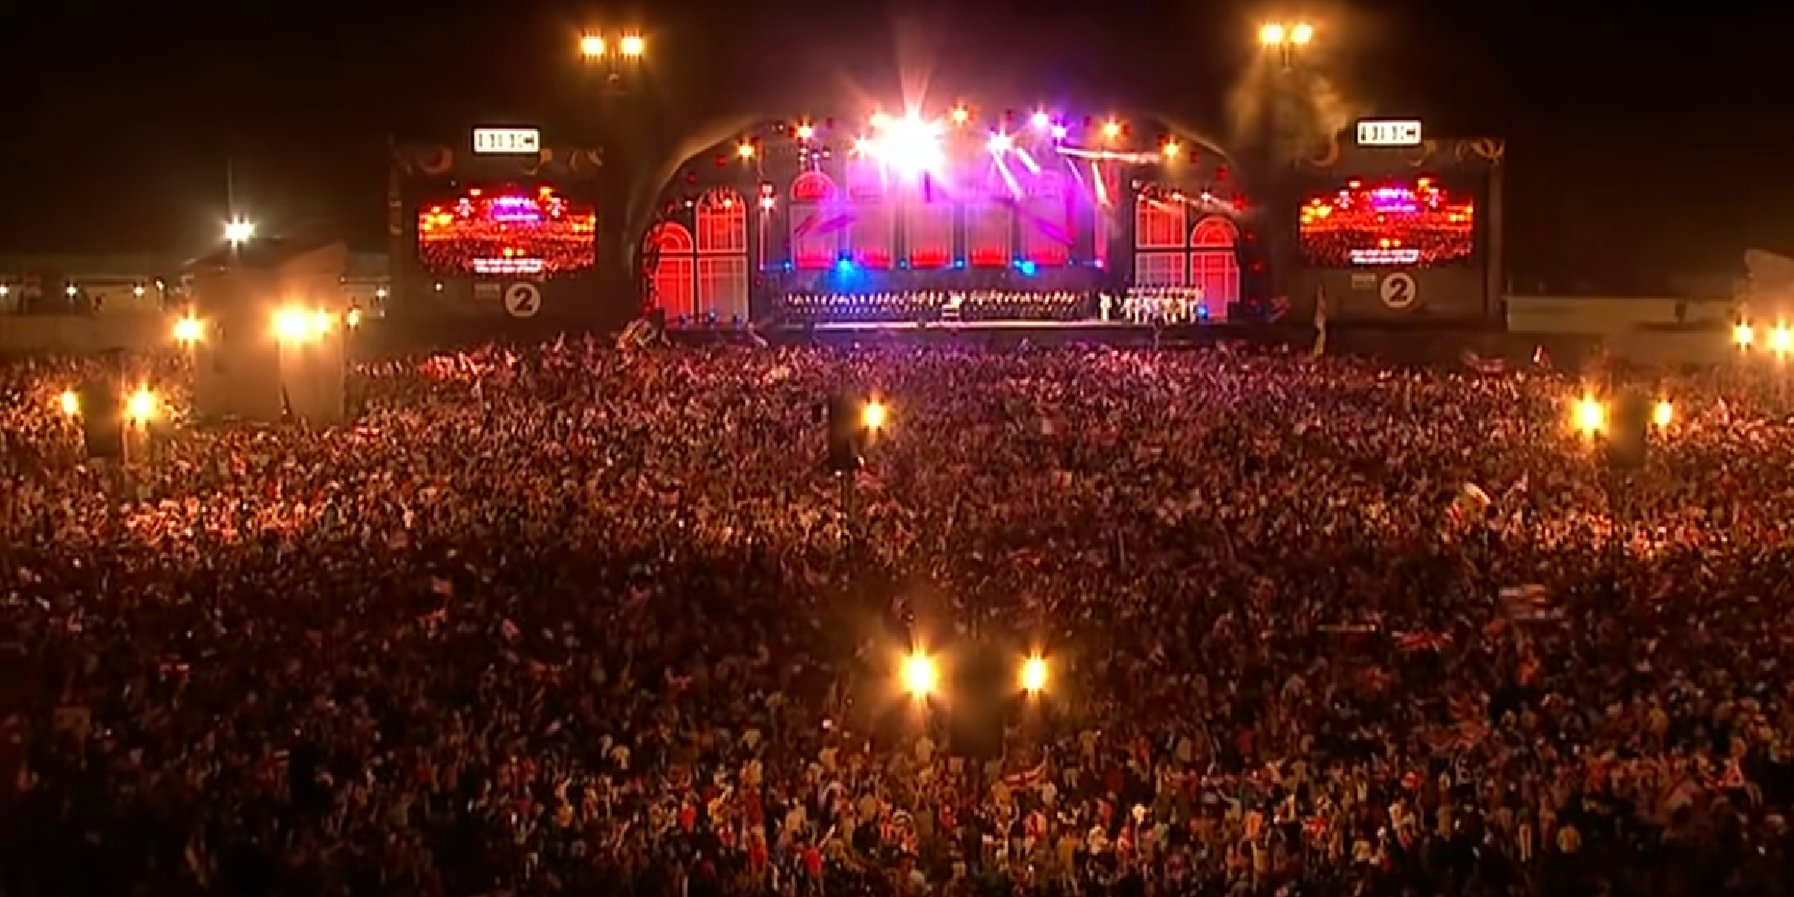 Edgar Elgar's »Land of Hope and Glory« (Last Night of the Proms 2012)